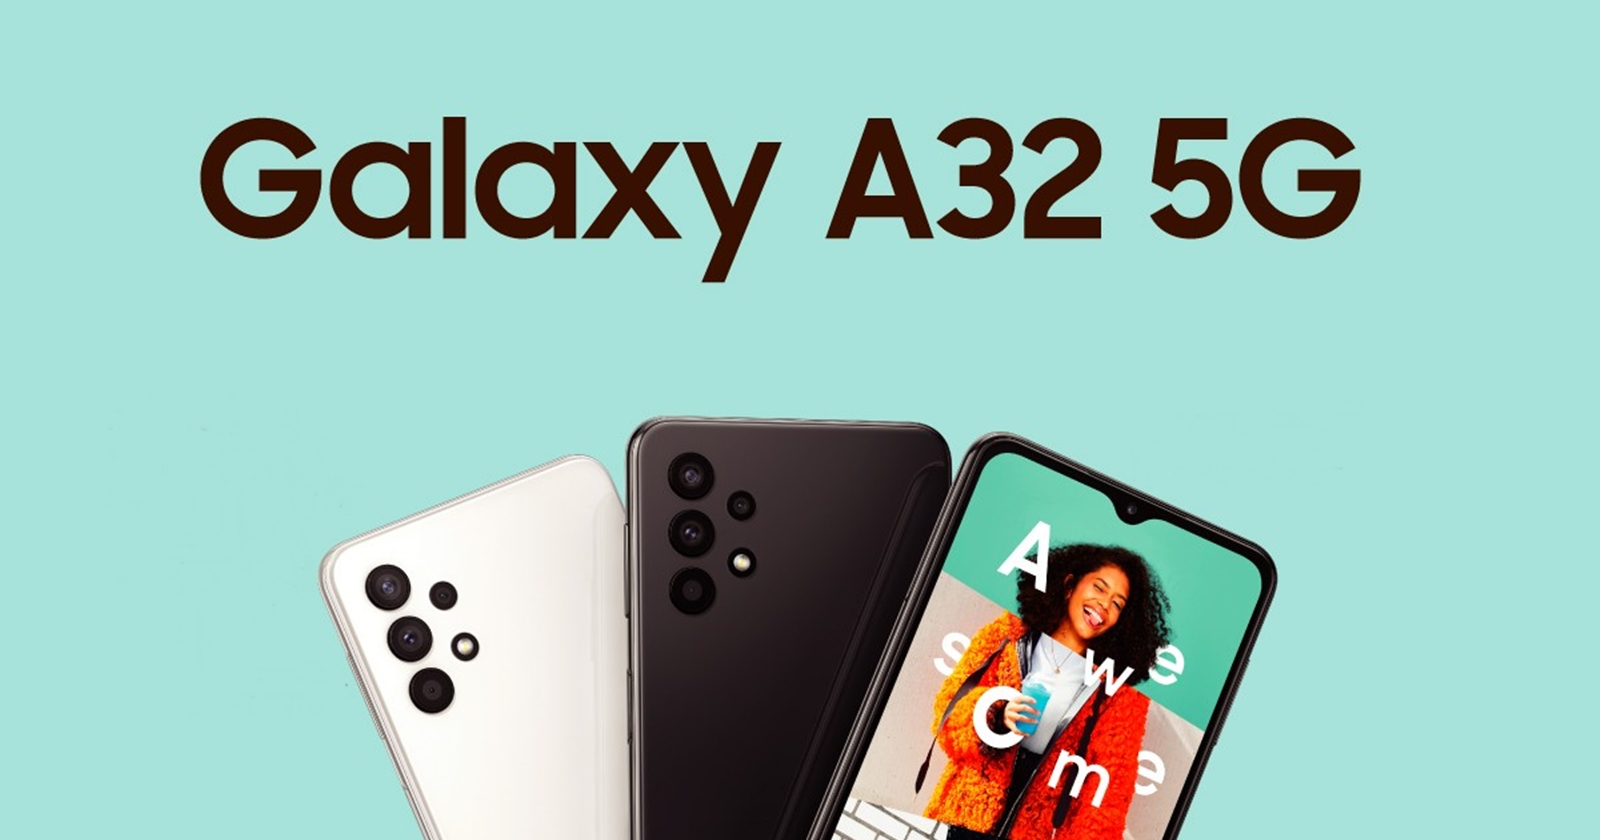 Samsung Galaxy A32 5G Official!  Cheap 5G phone from Samsung with quad camera and 5000 mAh battery on the back